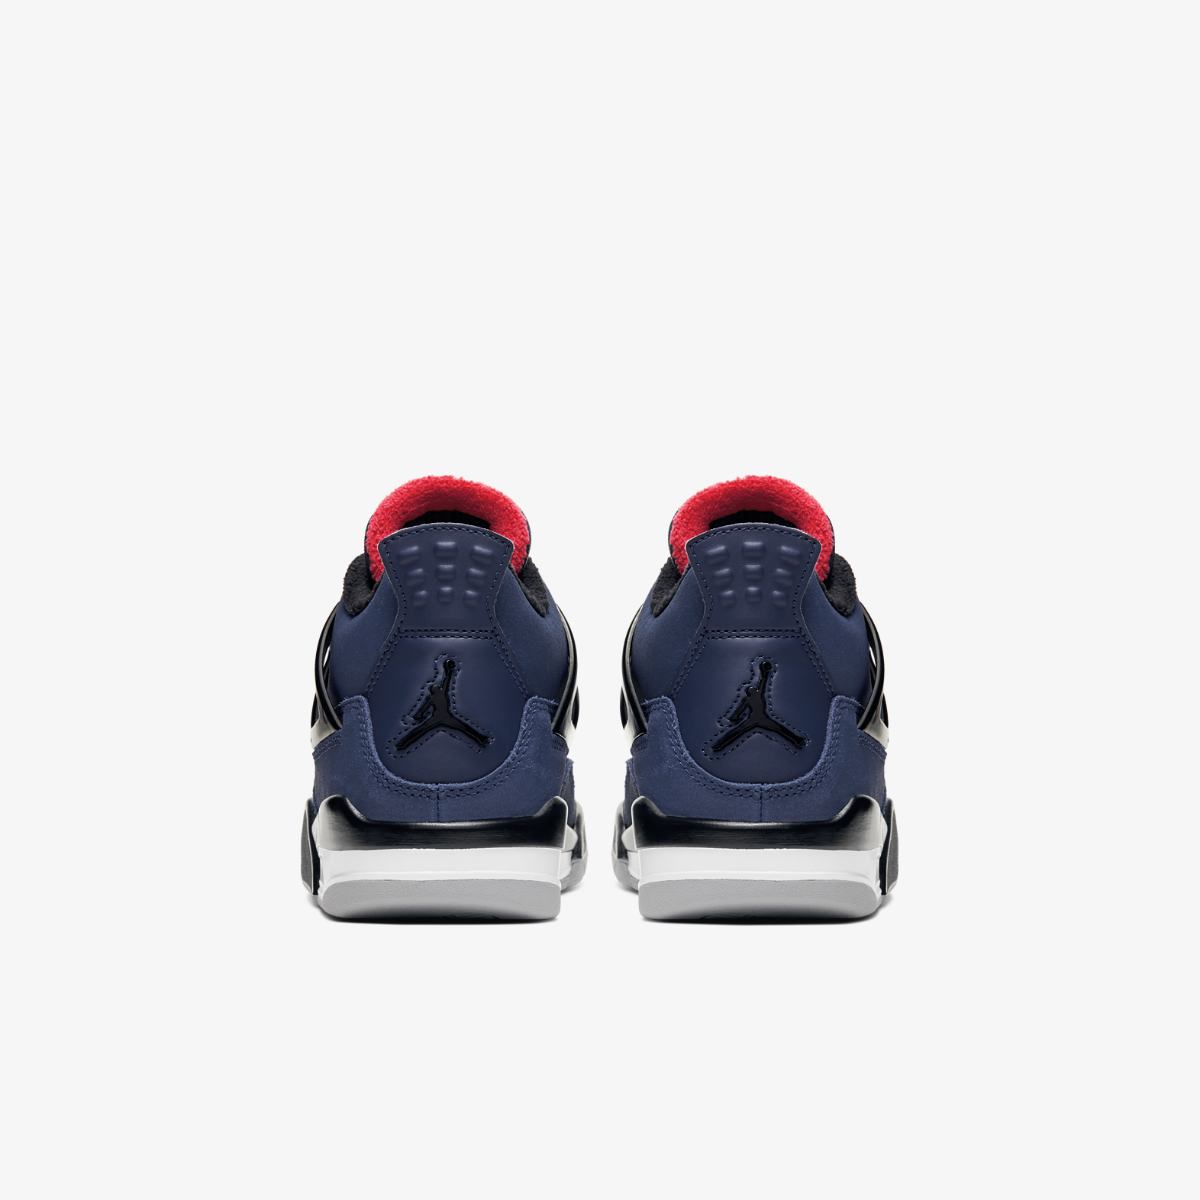 Кроссовки Jordan AIR 4 RETRO WNTR BG